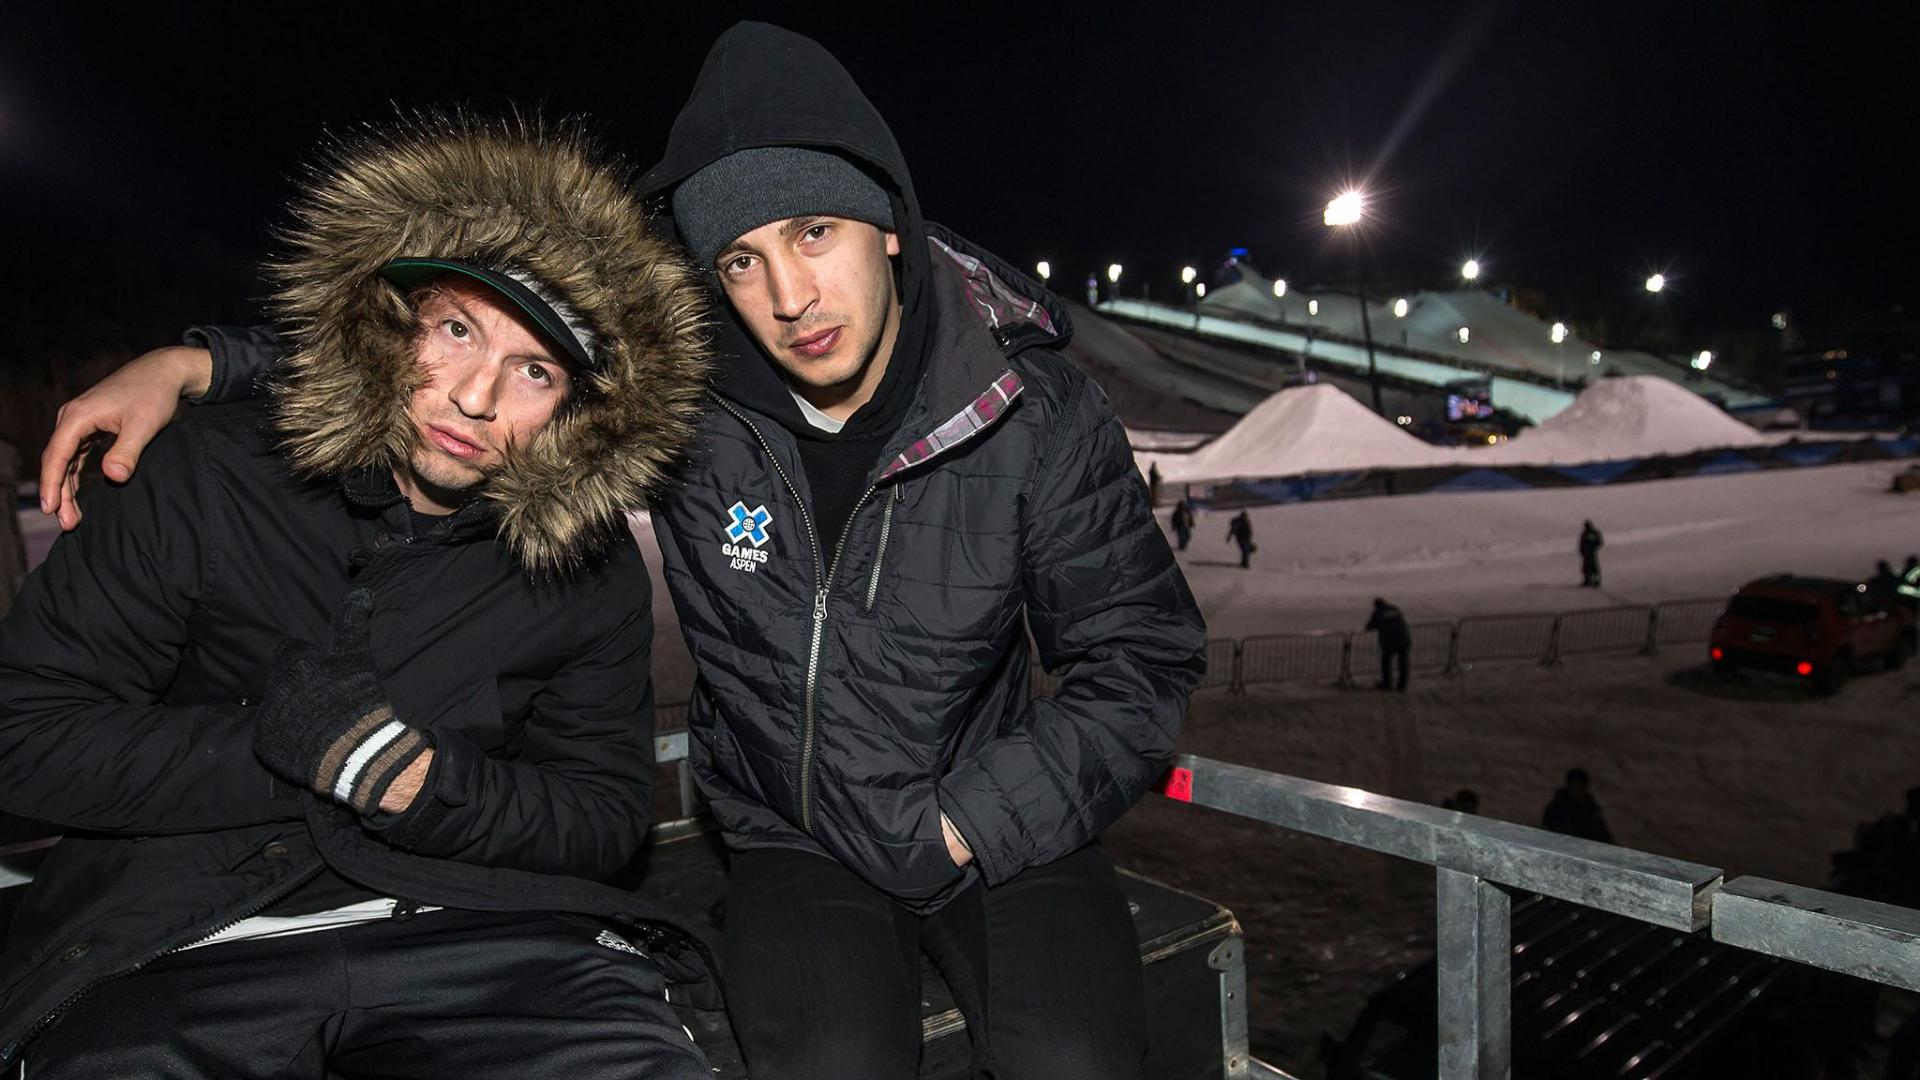 Twenty one pilots live at x games aspen 2016 for Twenty one pilots